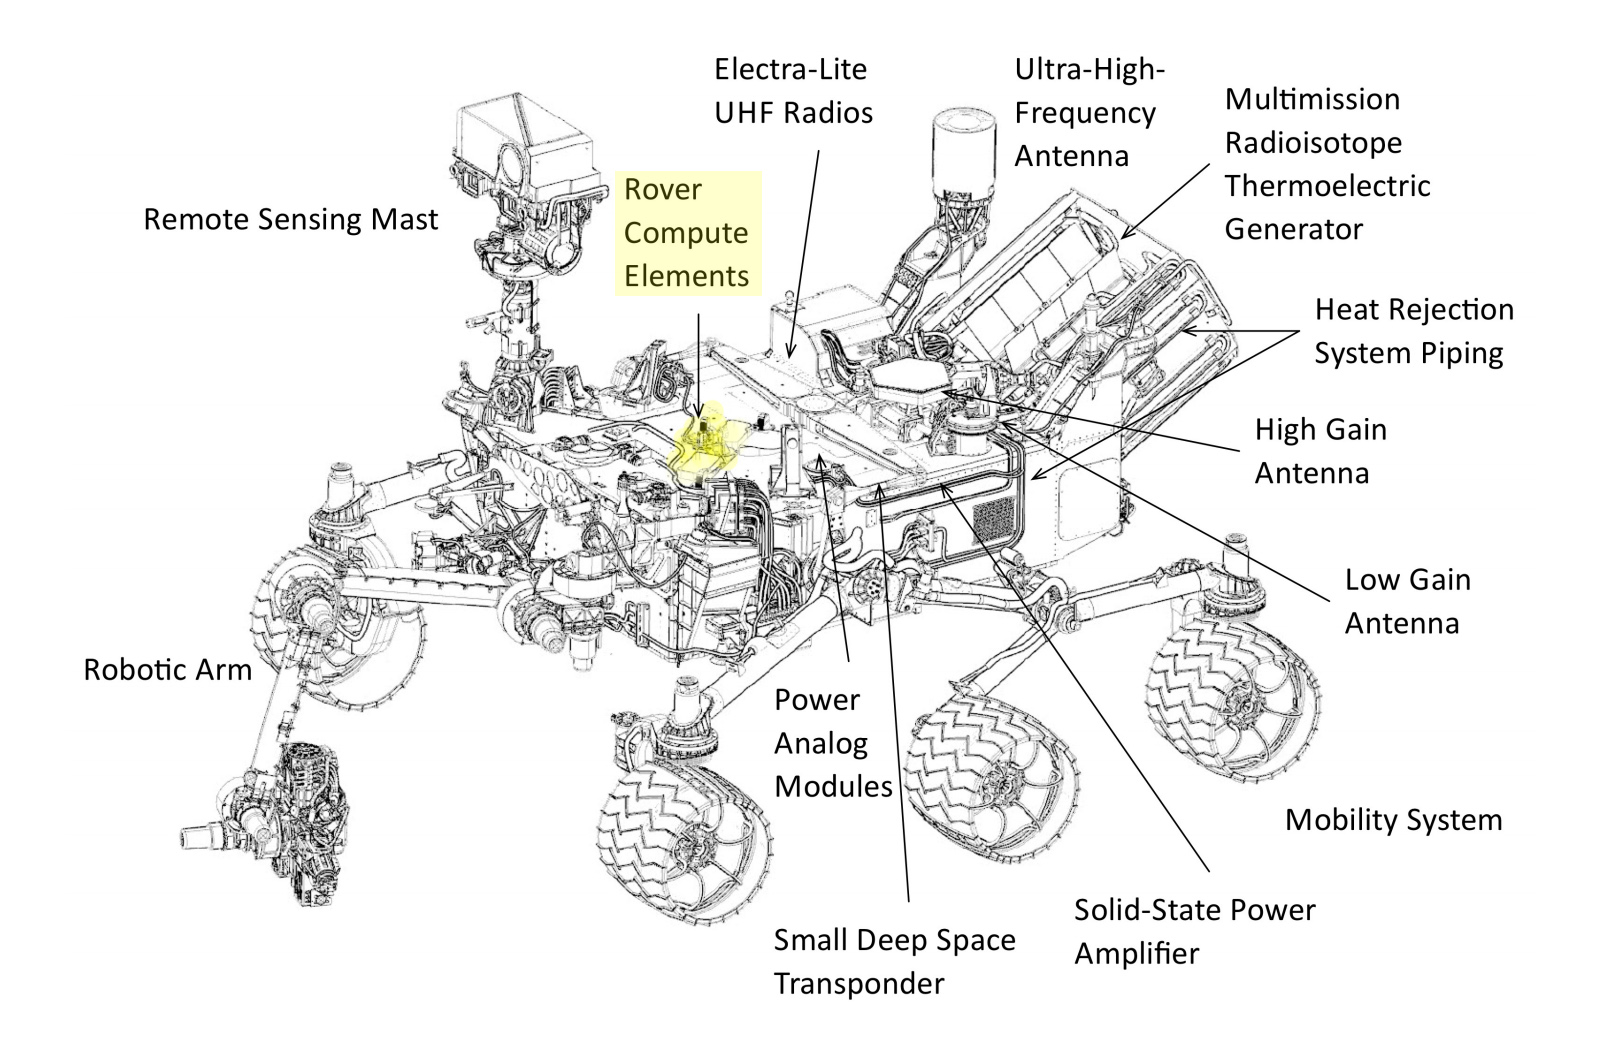 Curiosity Rover Compute Elements (highlighted)